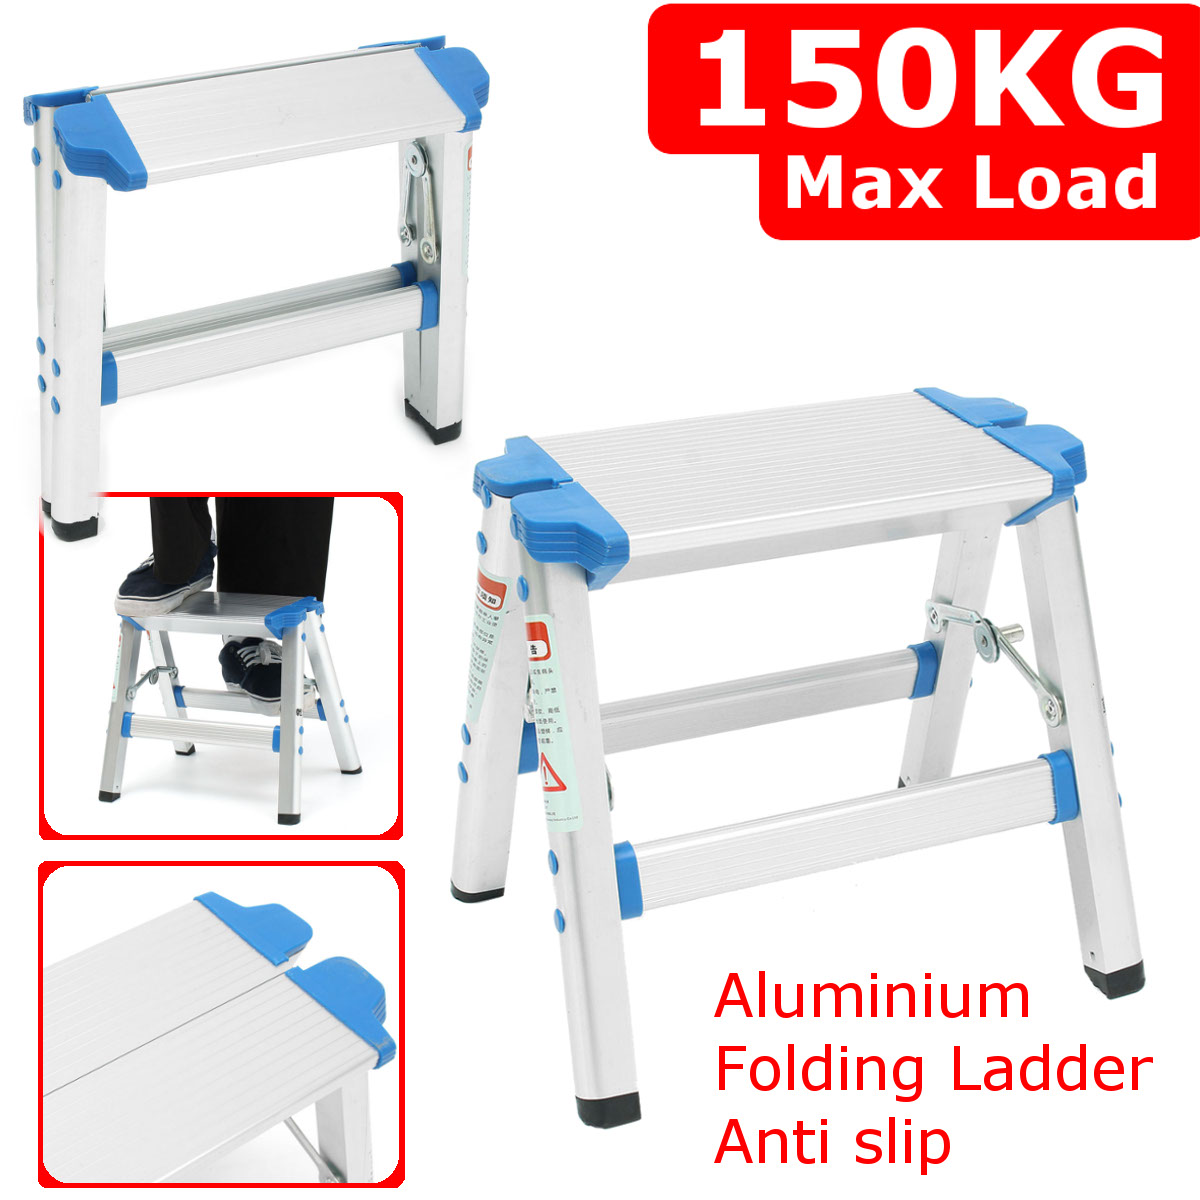 Aluminium Mini Anti Slip Ladder Folding Safety Step Ladder Step Stools Multifunctional 150kg Thick Pedal Construction Tool